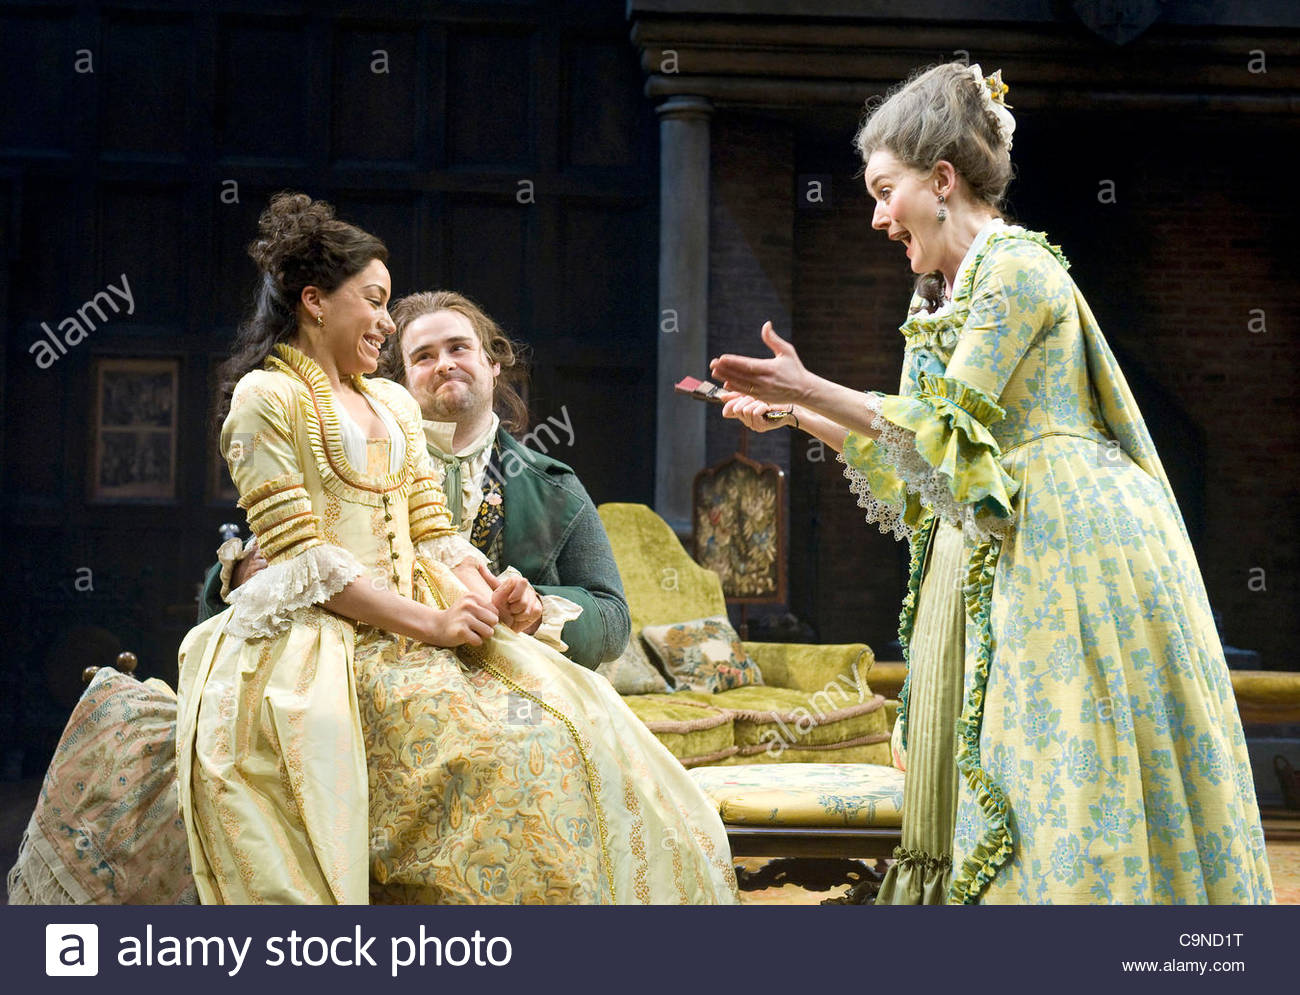 a critique of the play she stoops to conquer by oliver goldsmith Goldsmith's financial windfall from the history of england was followed by another success, the staging of his play she stoops to conquer at covent garden in march 1773 despite being performed at the end of the season, the play was an immediate critical and popular triumph and was brought back for the fall season.